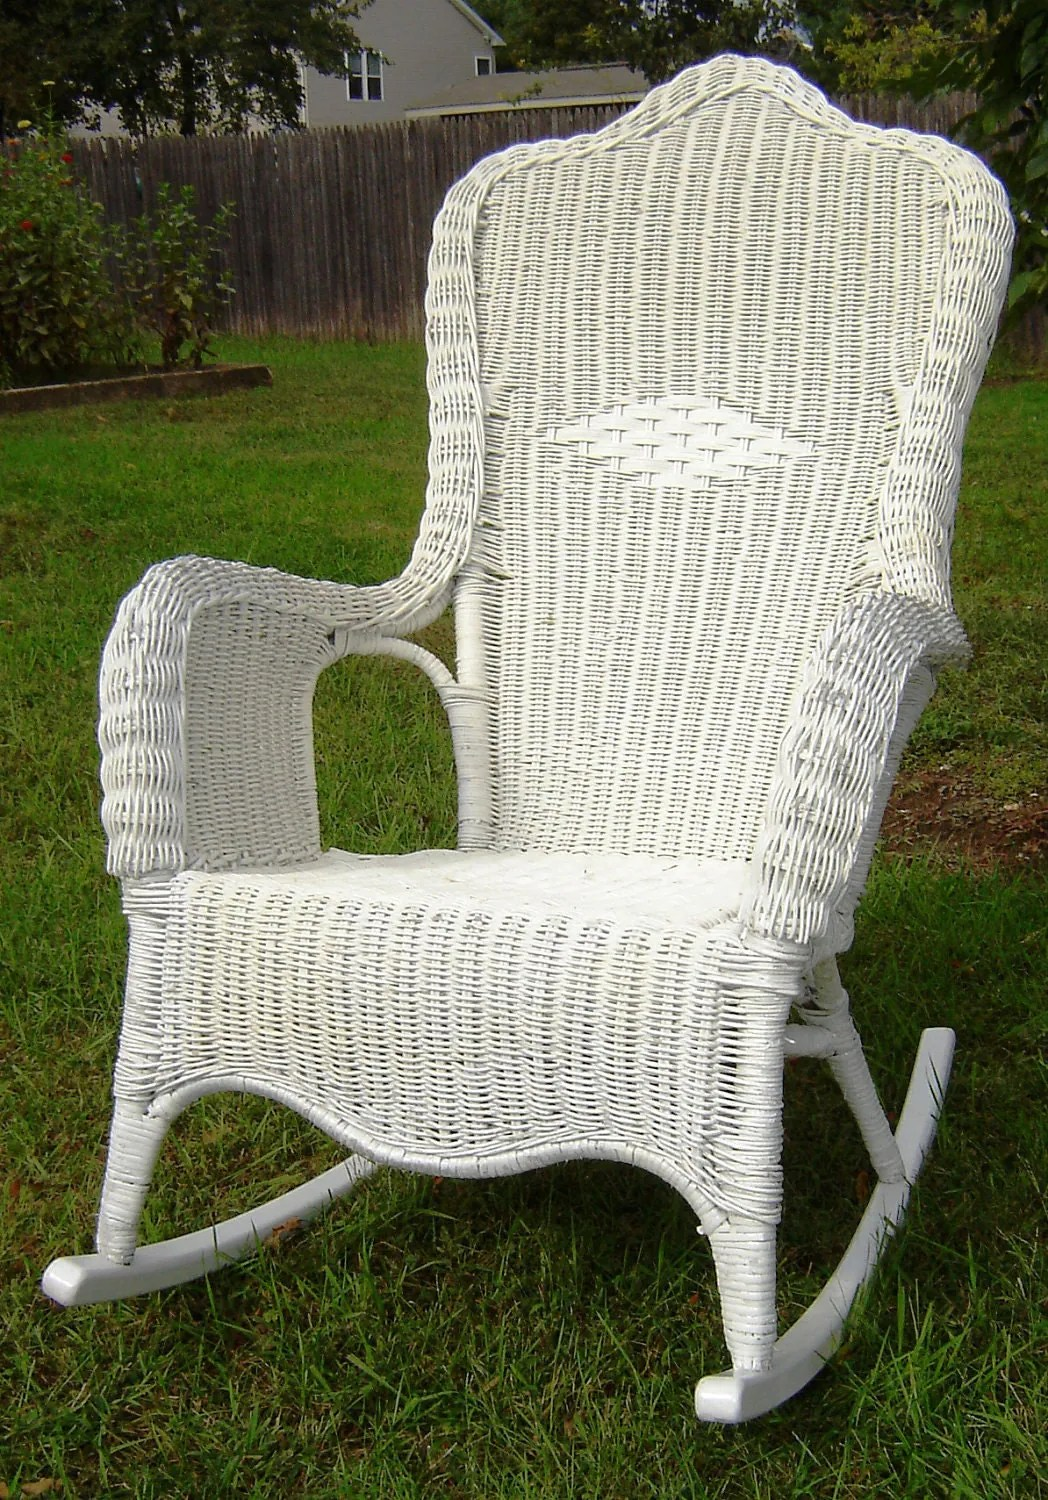 Indoor Wicker Rocking Chair Vintage White Wicker Rocking Chair